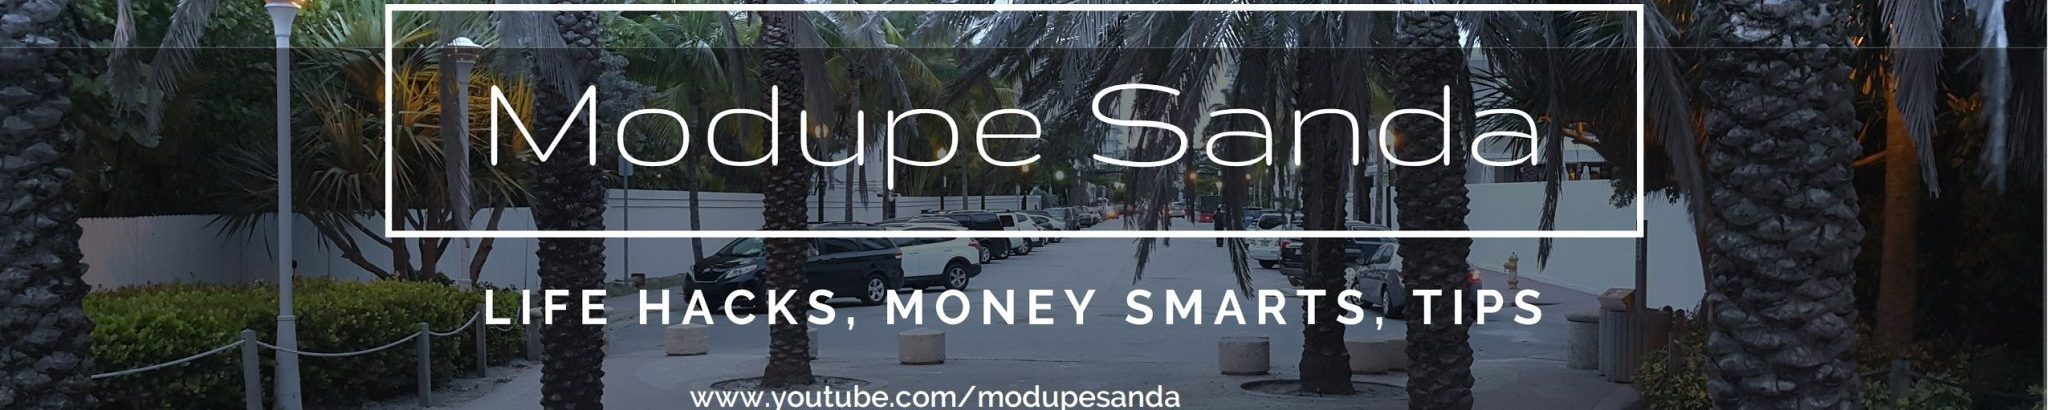 Money Smarts with Modupe